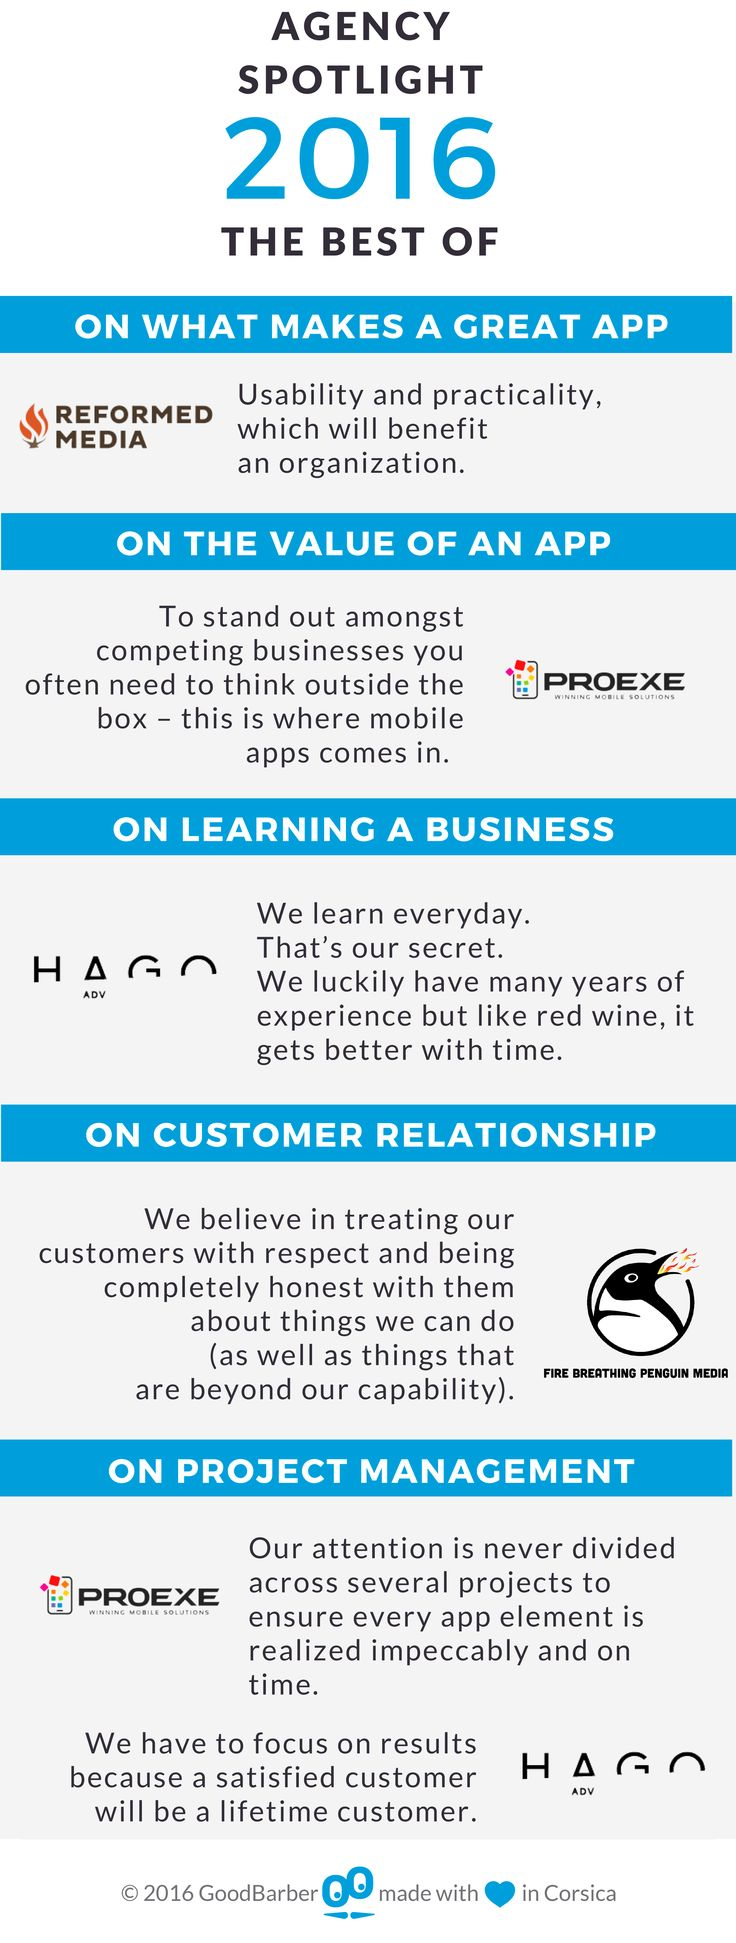 App creation advice from Agency owners - the best of 2016 #quotes #infographic